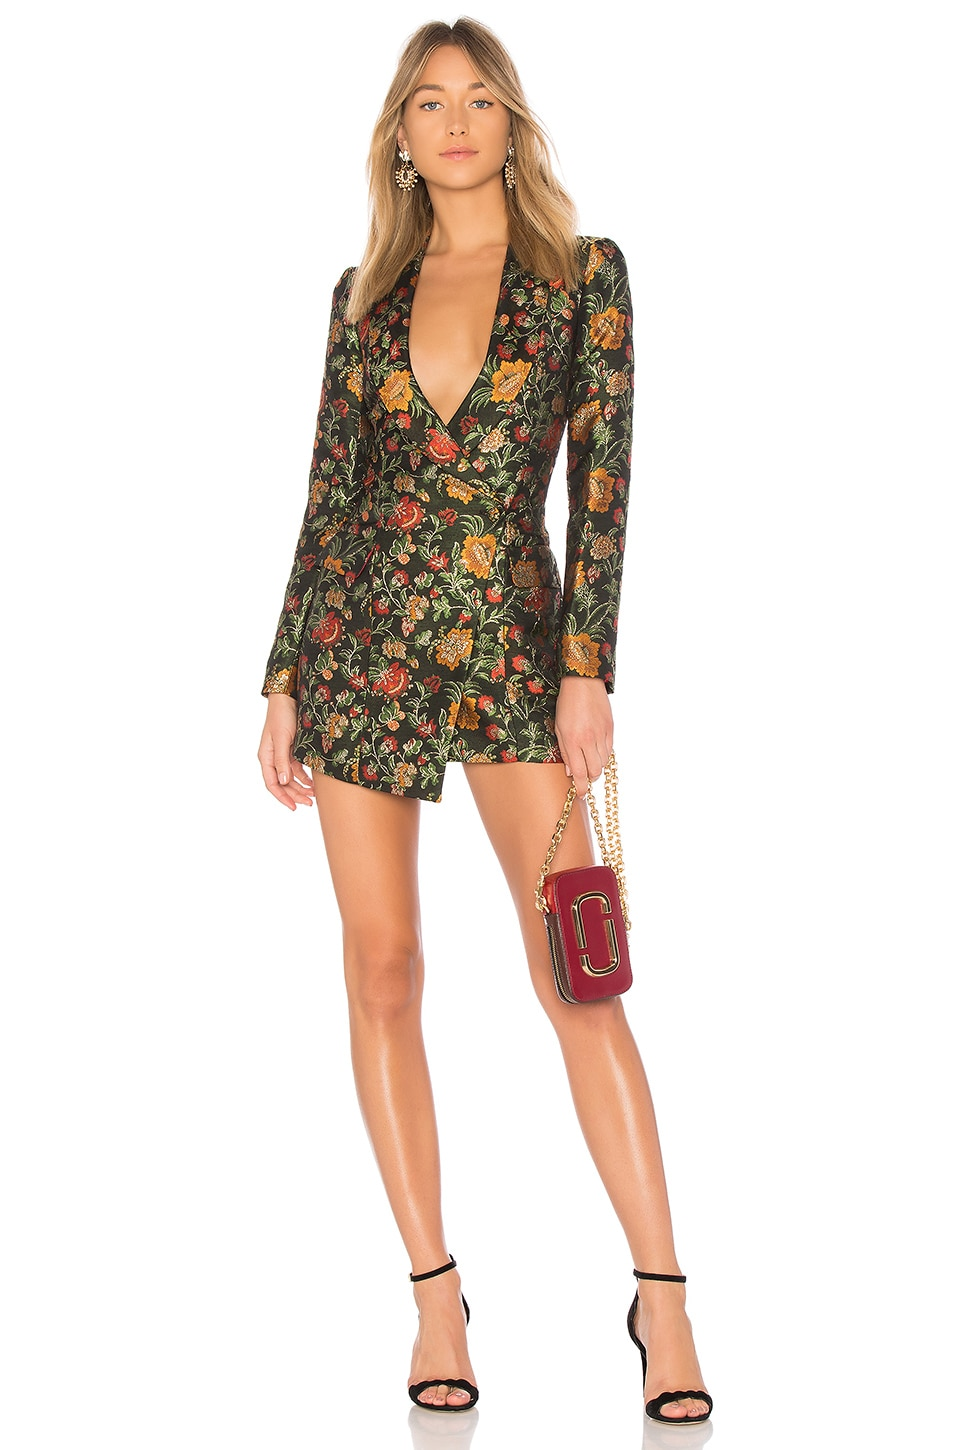 Lovers + Friends Ally Mini Dress in Black Floral